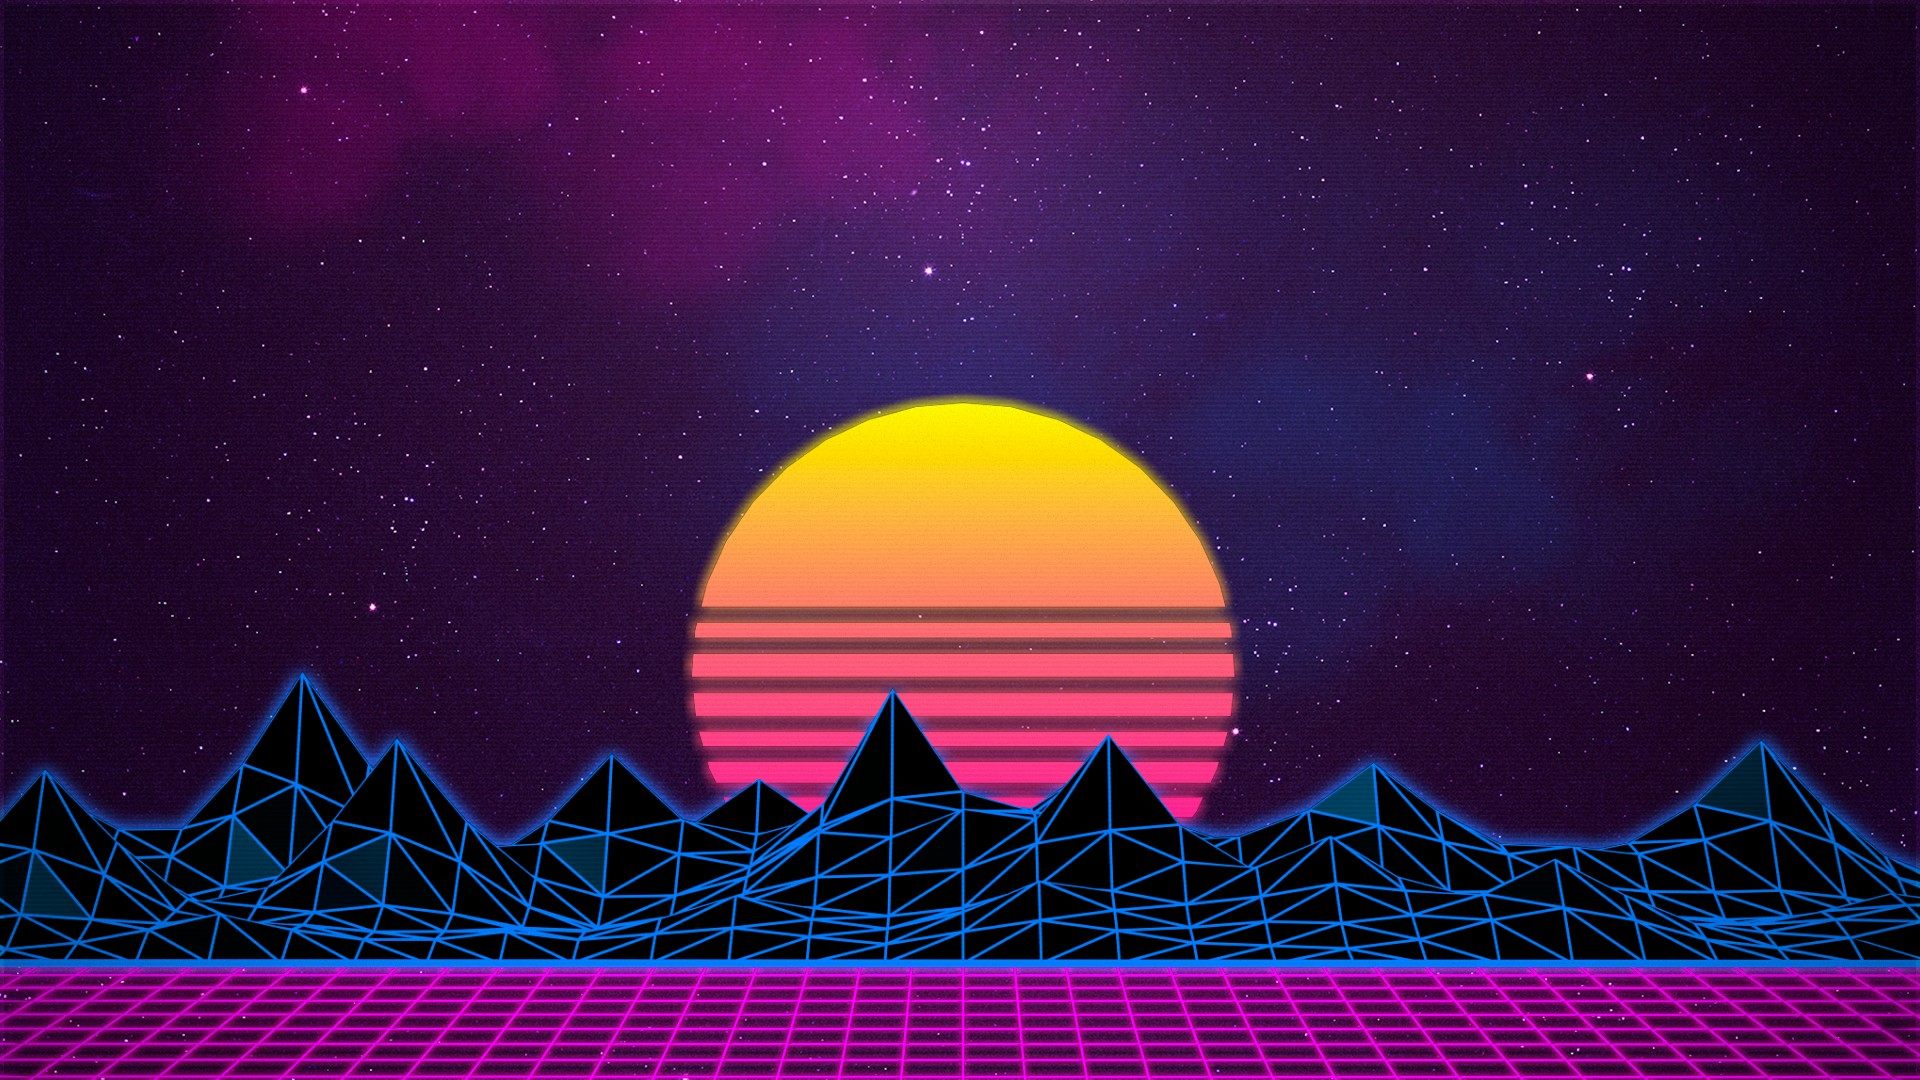 vaporwave wallpaper 1920x1080 download free awesome full hd